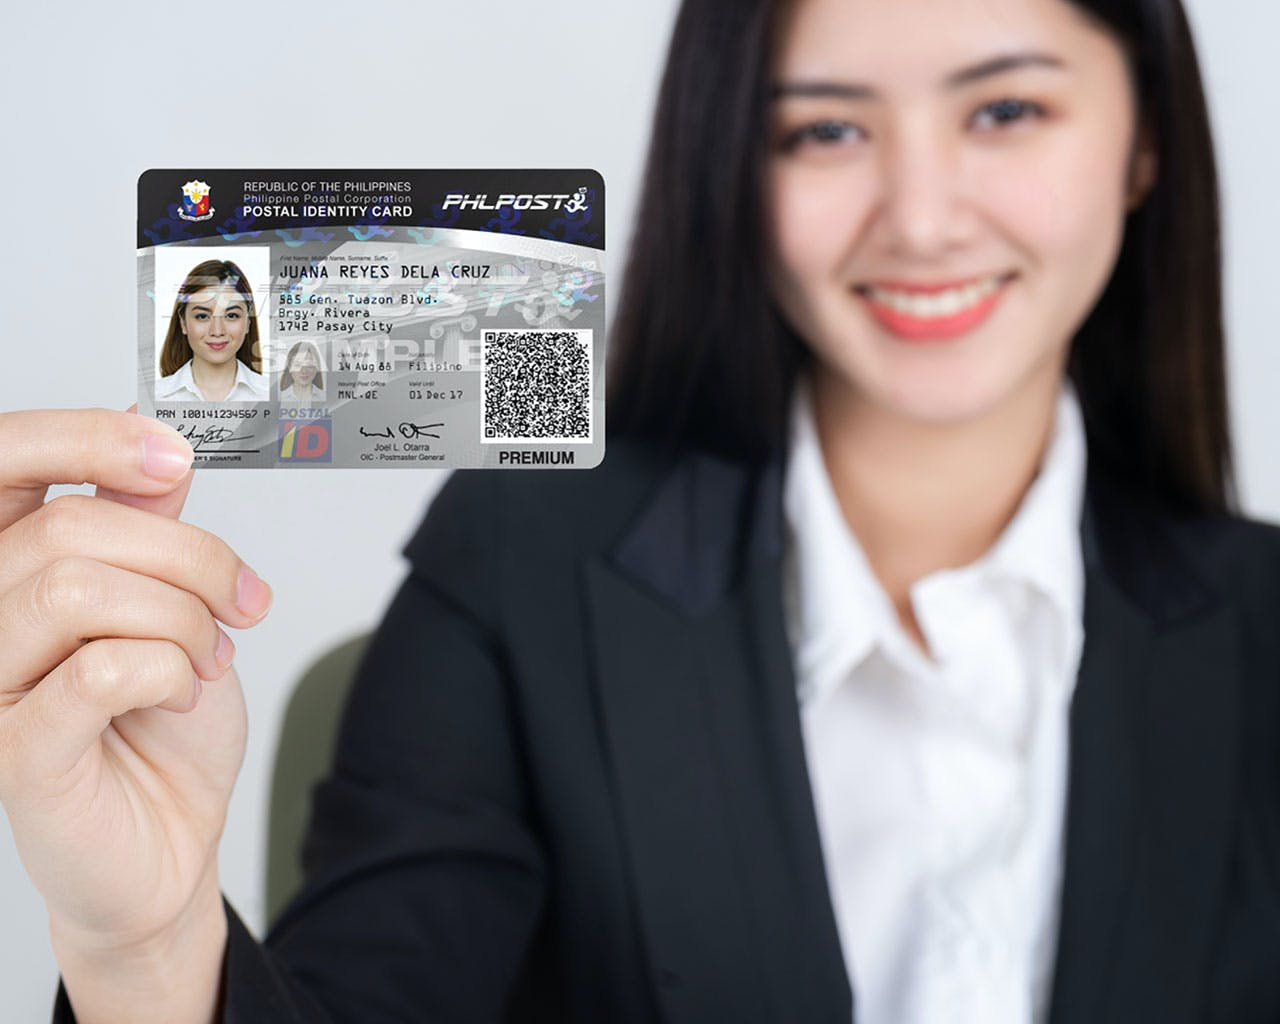 Get A Government-Issued ID In 3 Weeks. Here's How To Apply For A Postal ID In The Philippines